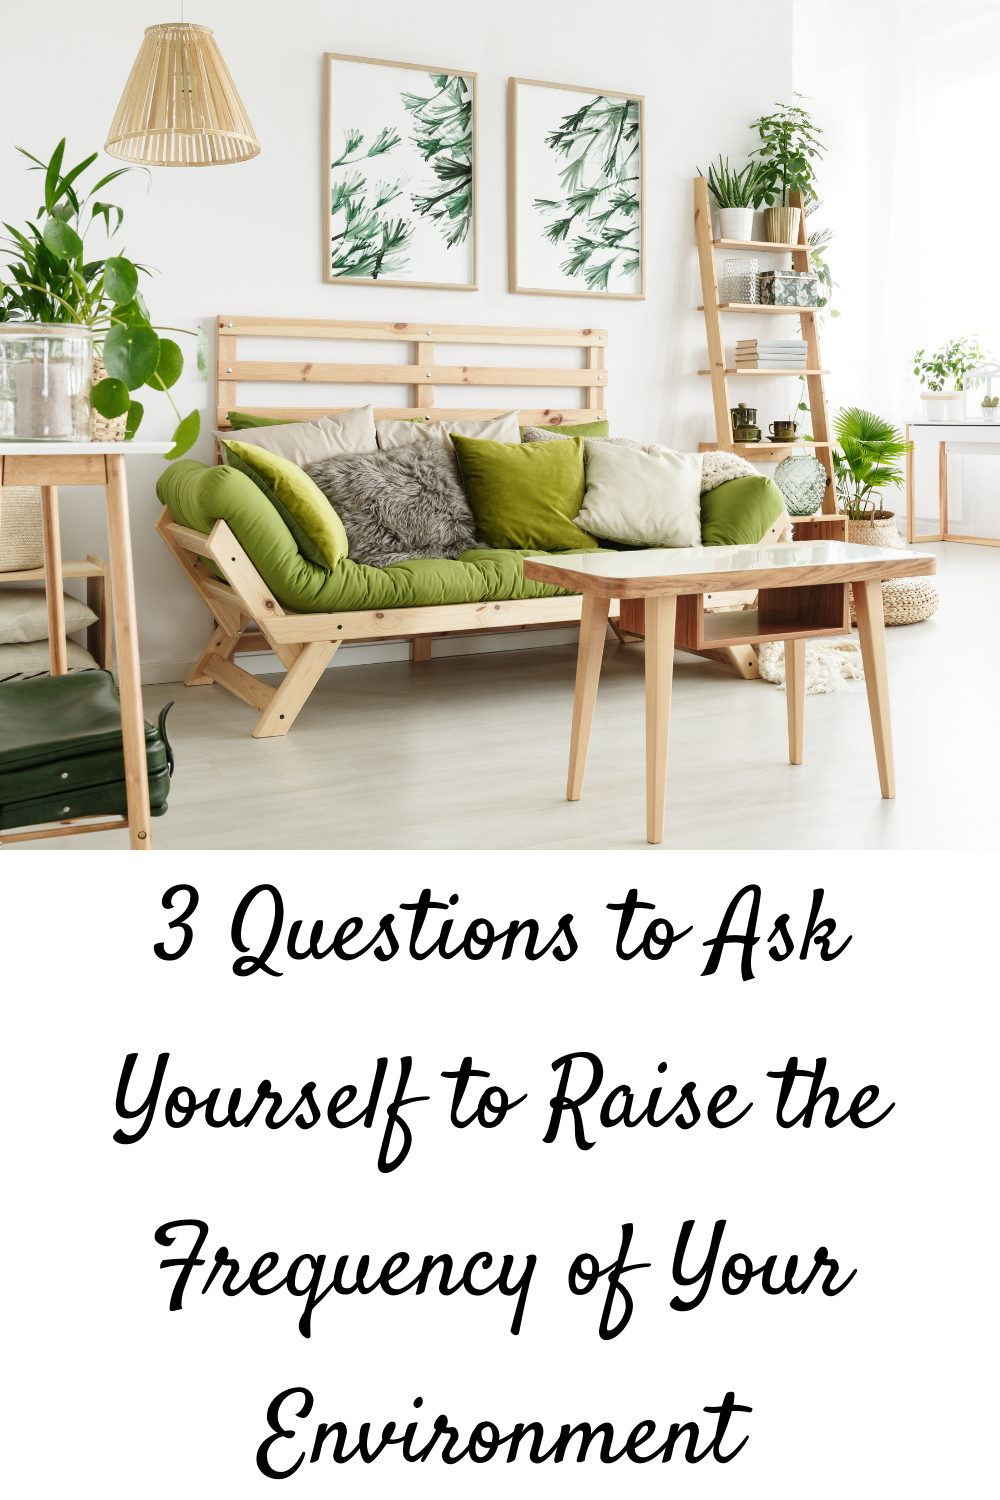 3 Questions to Ask Yourself to Raise the Frequency of Your Environment